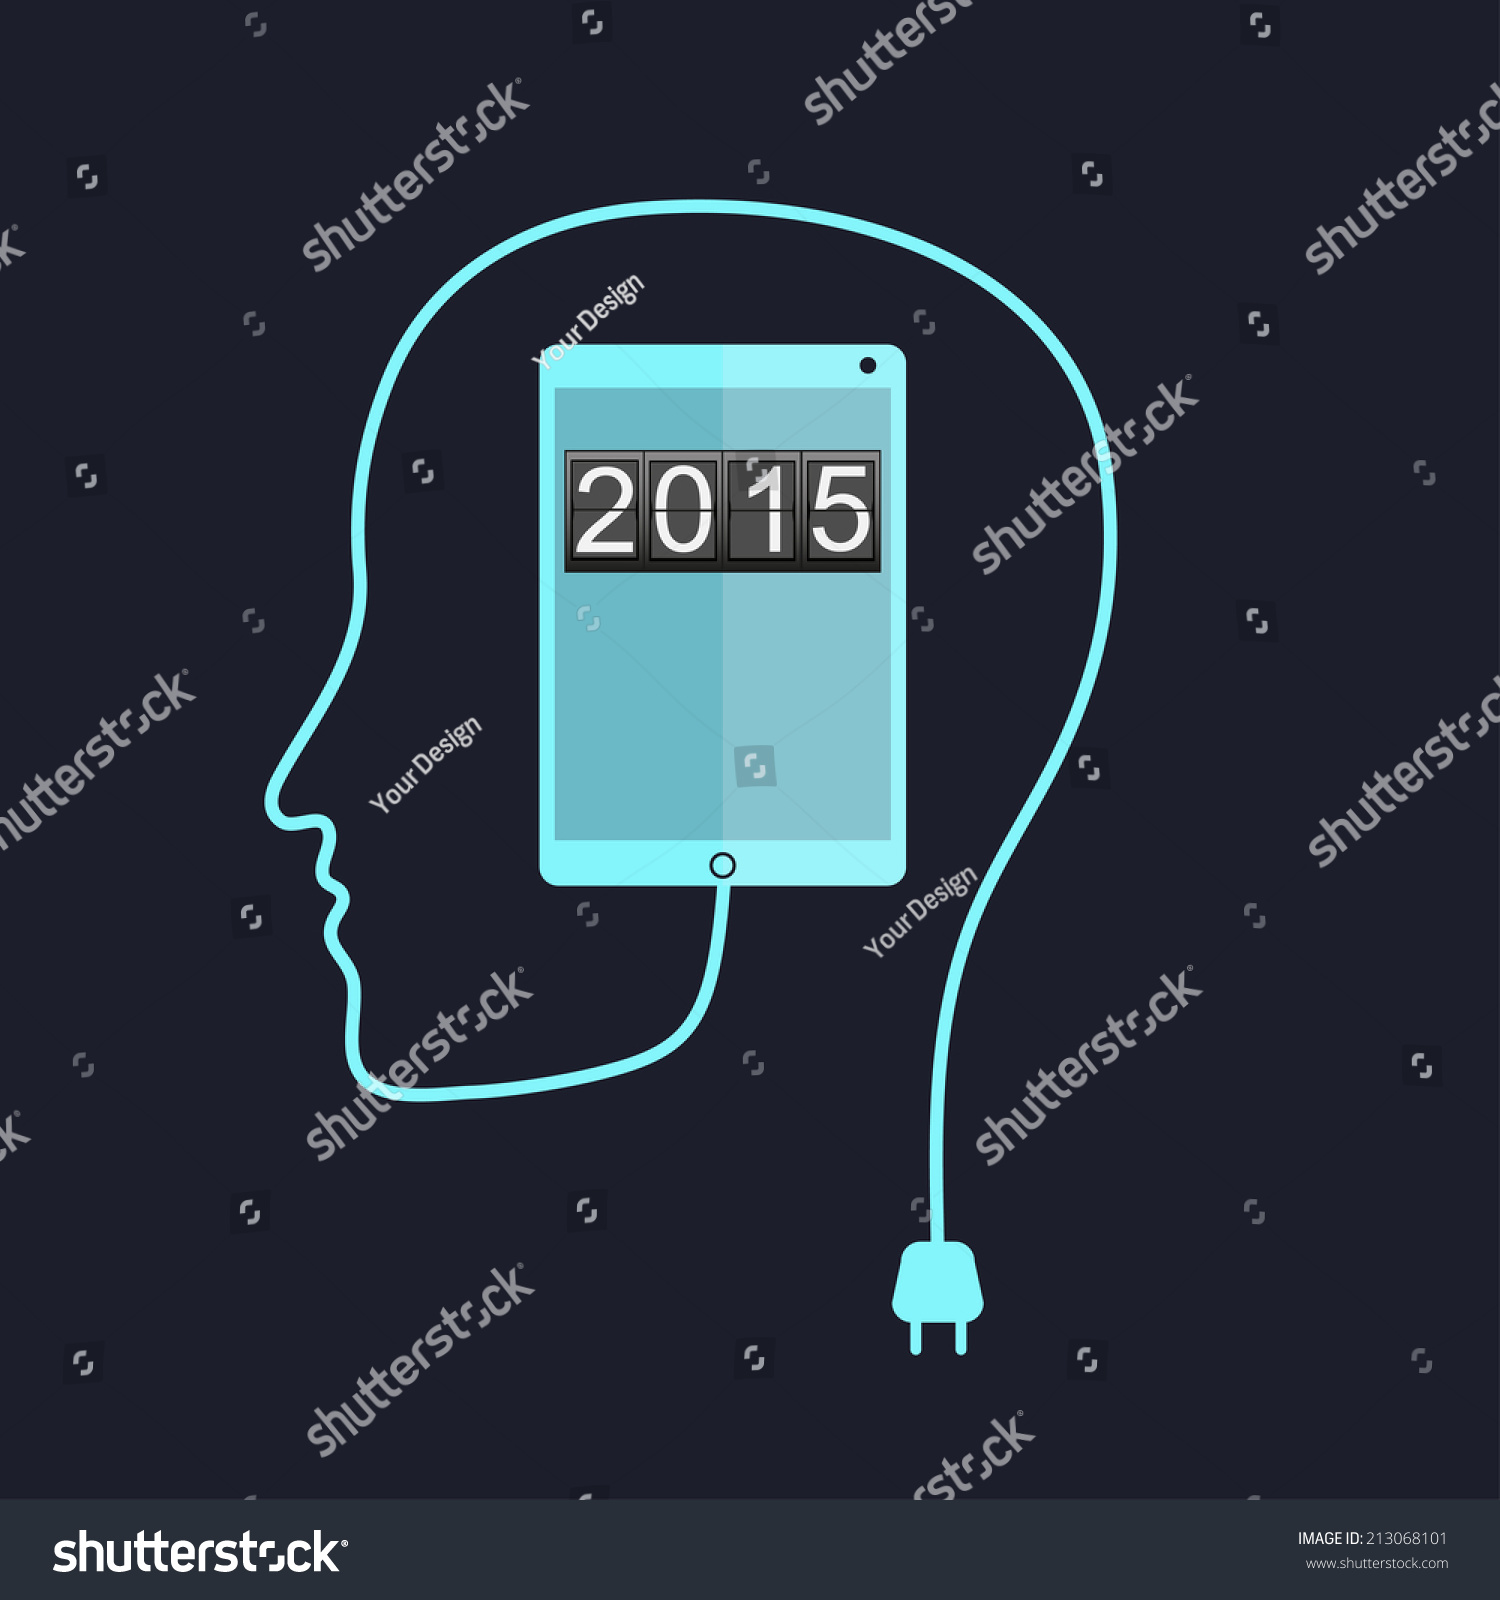 2015 on tablet pc display over stock illustration 213068101 2015 on tablet pc display over matrix background happy new year with departures style voltagebd Gallery